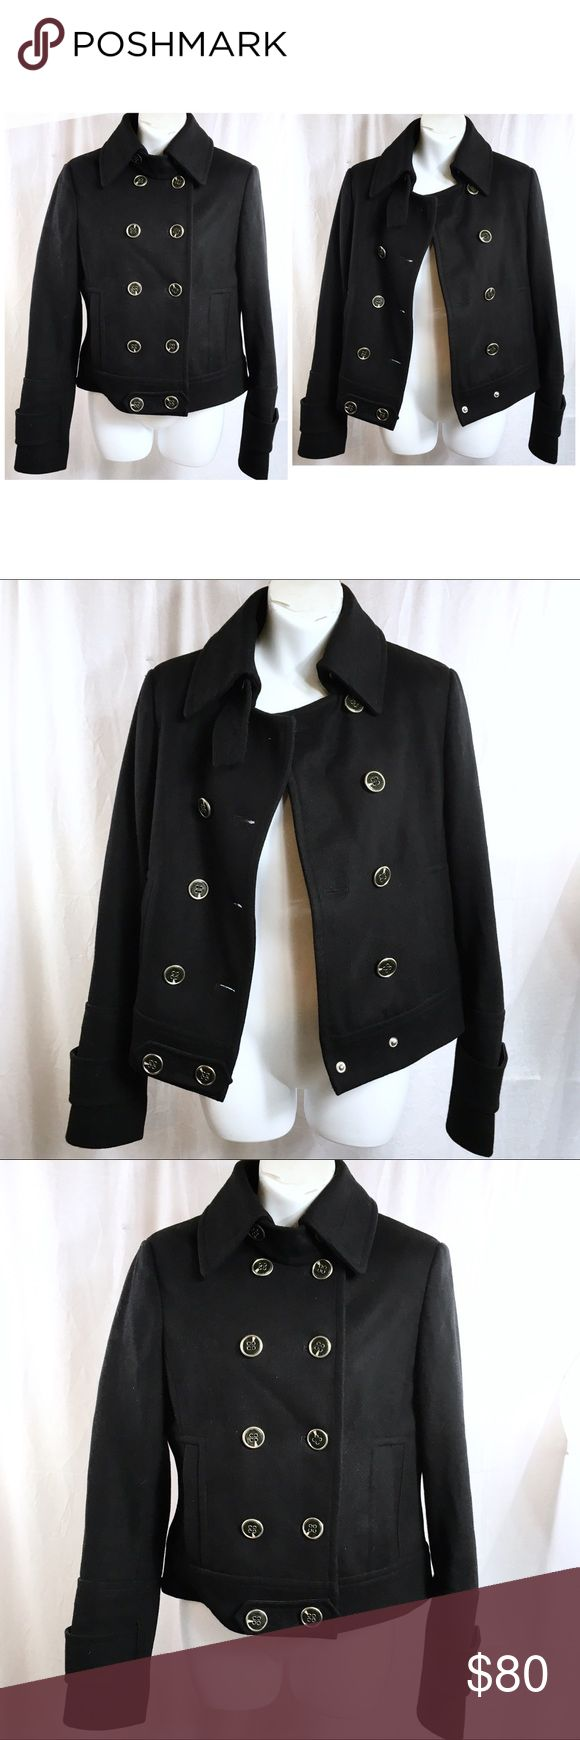 EXPRESS Black Wool Pea Coat Jacket - SMALL This jacket is in like new condition! The pockets are still sewn shut.  There are no flaws or spots on it. Laying flat, it measures 19 inches from armpit to armpit. It measures 15 inches from shoulder to shoulder. From the top of the shoulder towards the waist, it measures 22 inches. Express Jackets & Coats